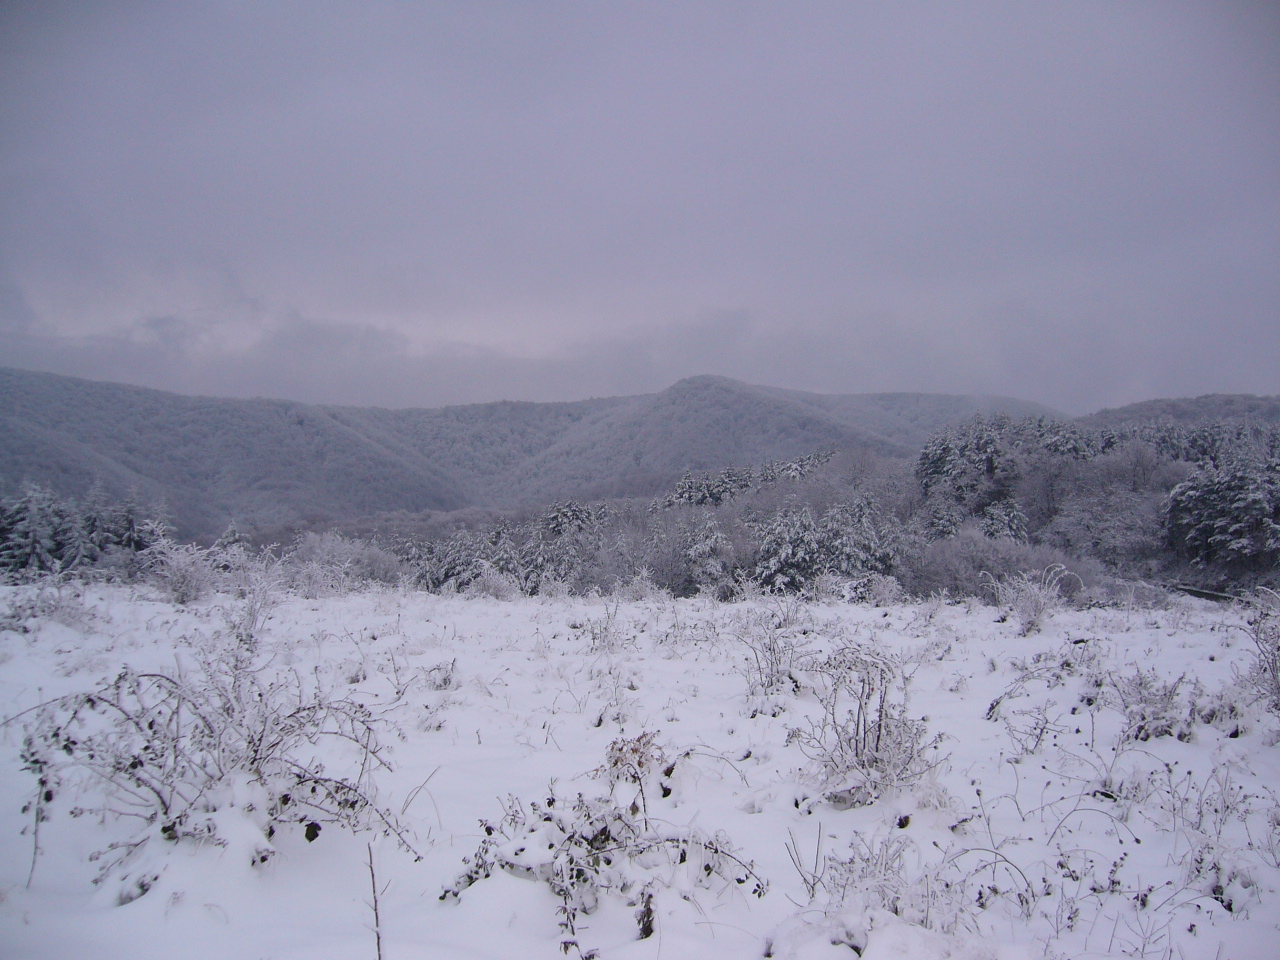 A PERSPECTIVE PIECE OF LAND 3100sq m FOR SALE 8km FROM GABROVO 500m FROM HOTEL